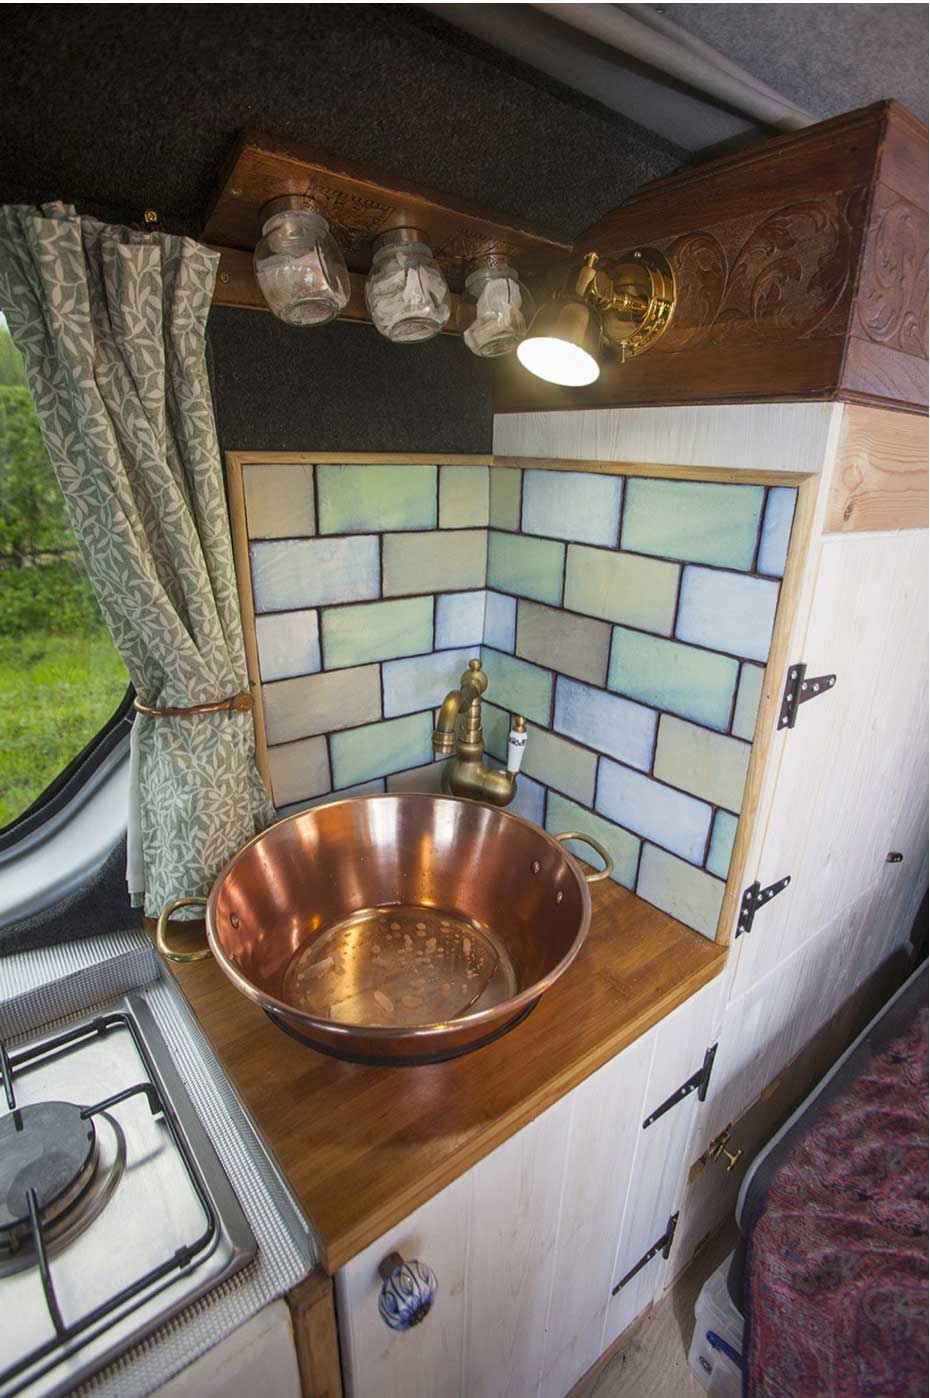 The quirky victorian Jam pan sink, with rustic tiling and brass light fittings.